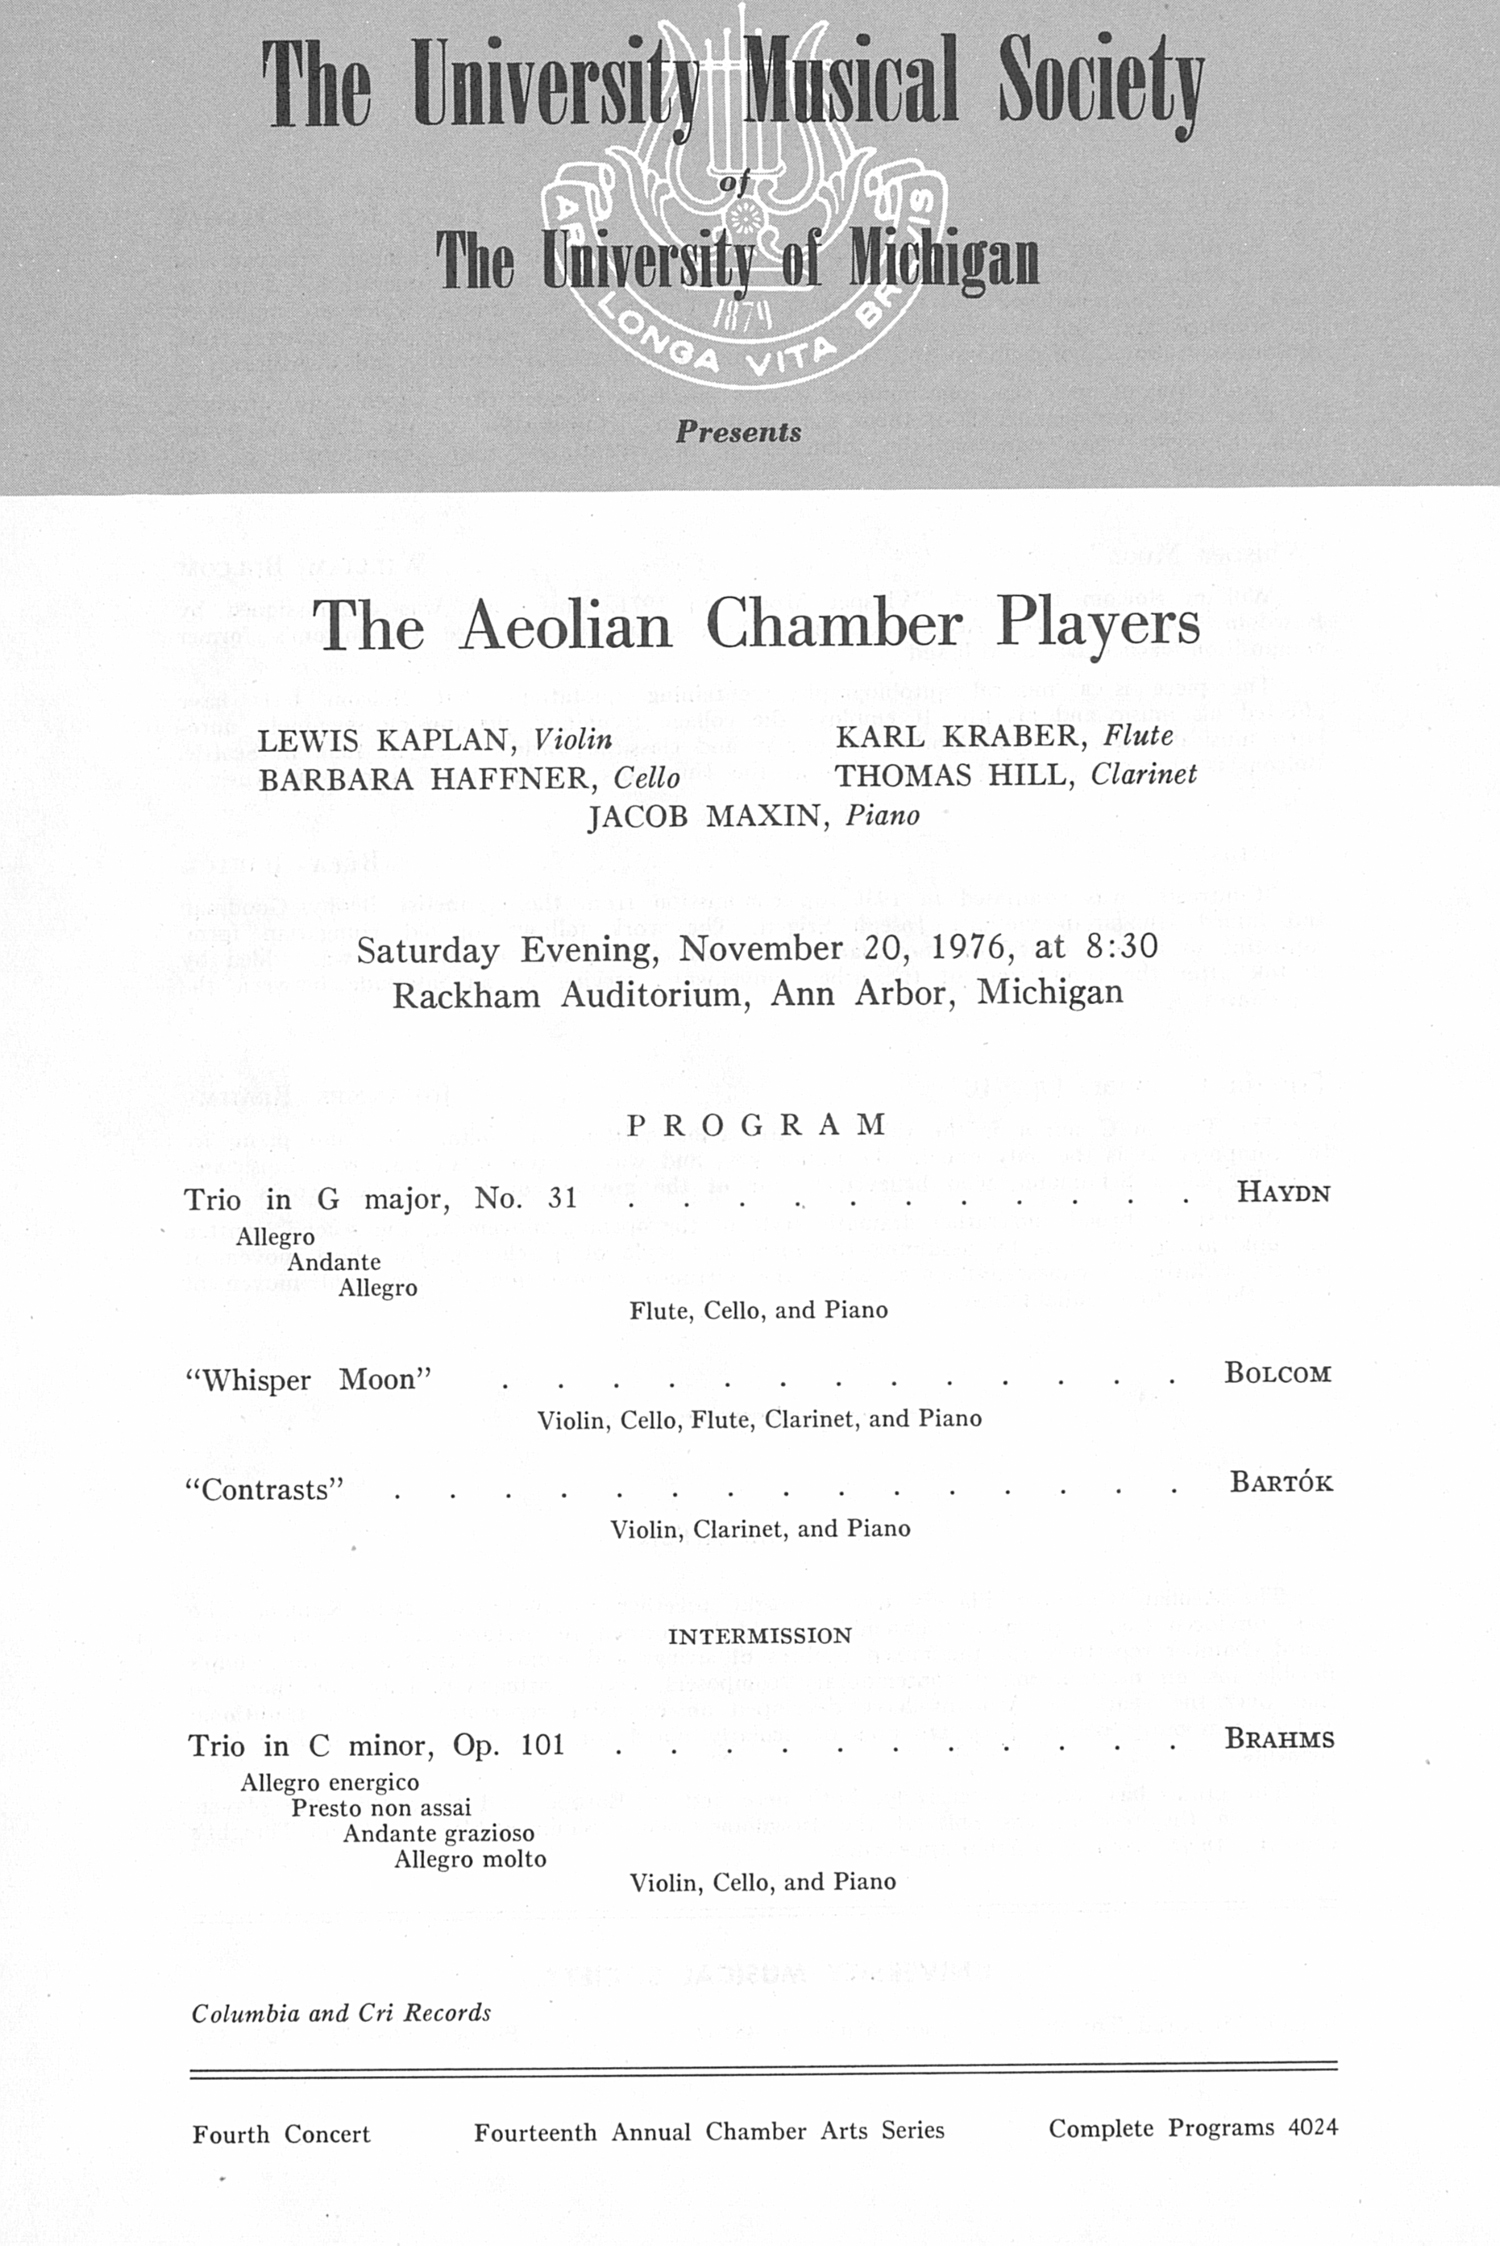 UMS Concert Program, November 20, 1976: The Aeolian Chamber Players --  image